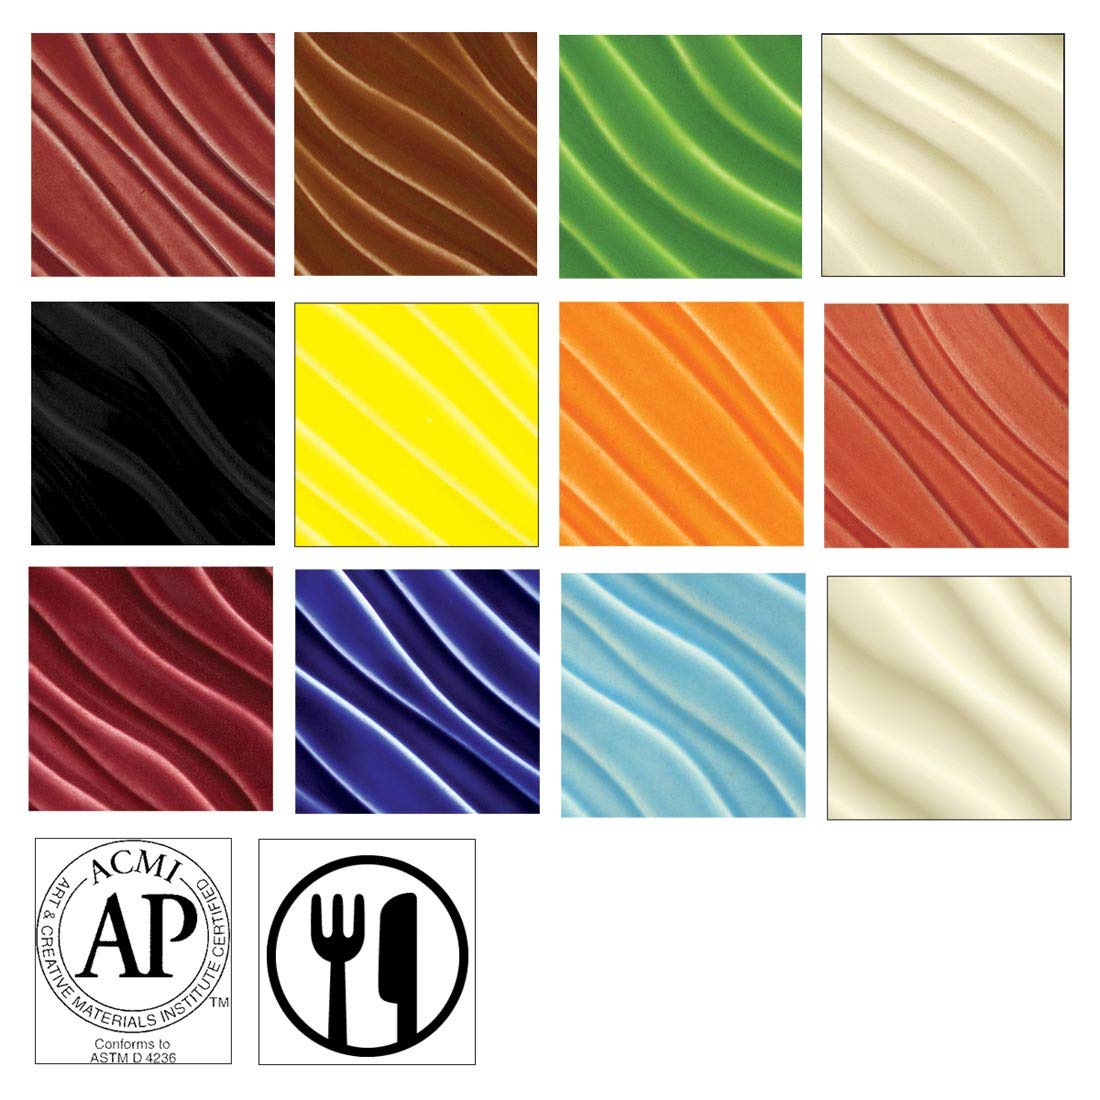 AMACO F Lead-Free Non-Toxic Glaze Classroom Pack for Grade K-6, 1 pt, Assorted Color, Pack of 12 by AMACO B0044S9C5S